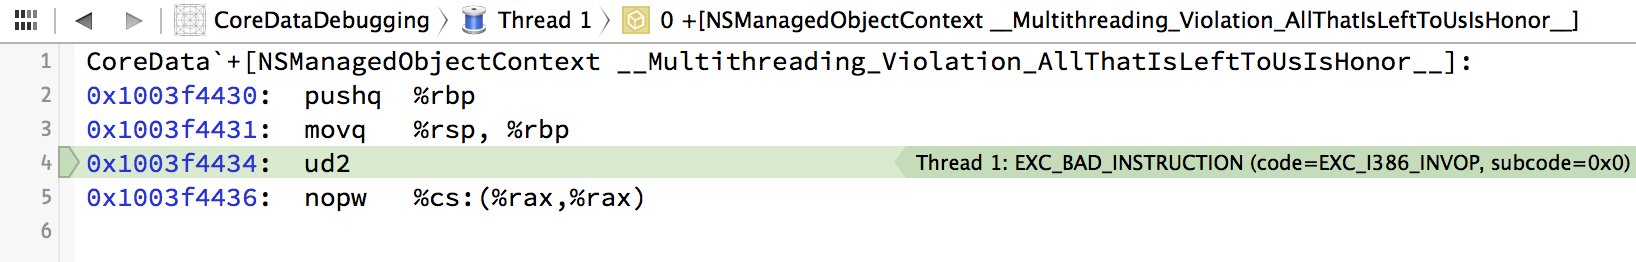 Xcode 6 displaying a Core Data multithreading violation exception